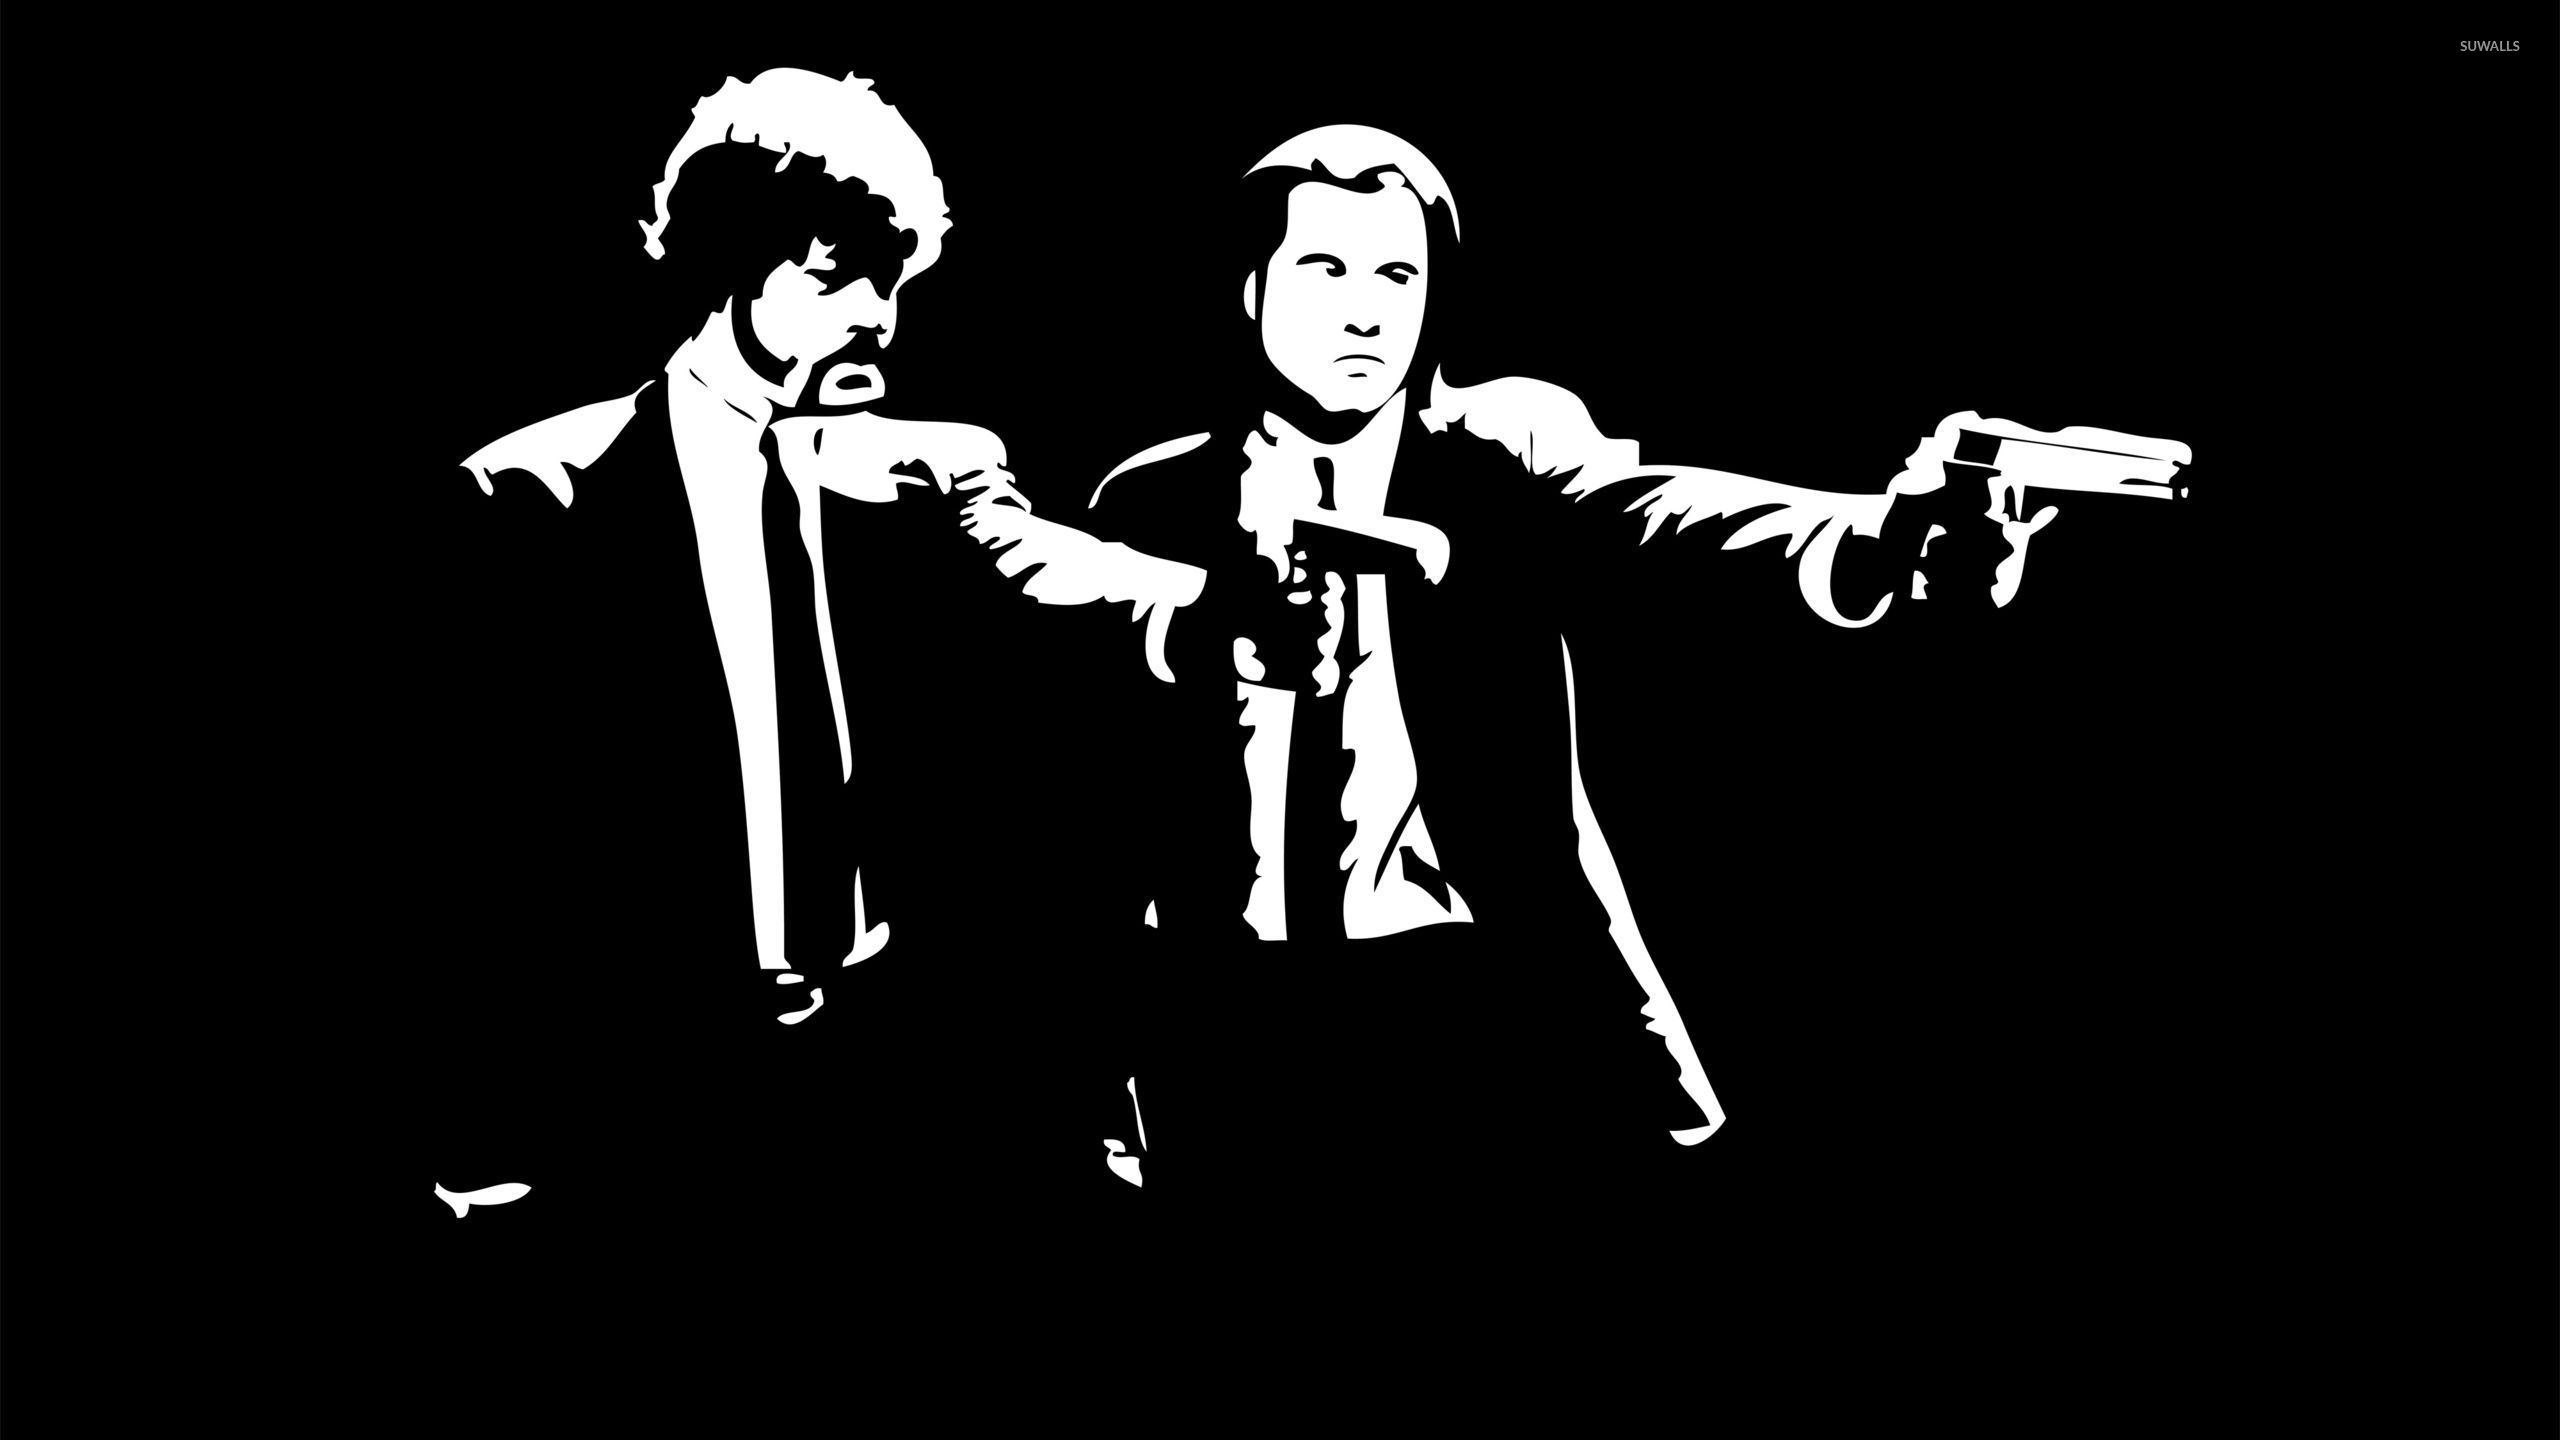 pulp fiction wallpaper - movie wallpapers - #32423